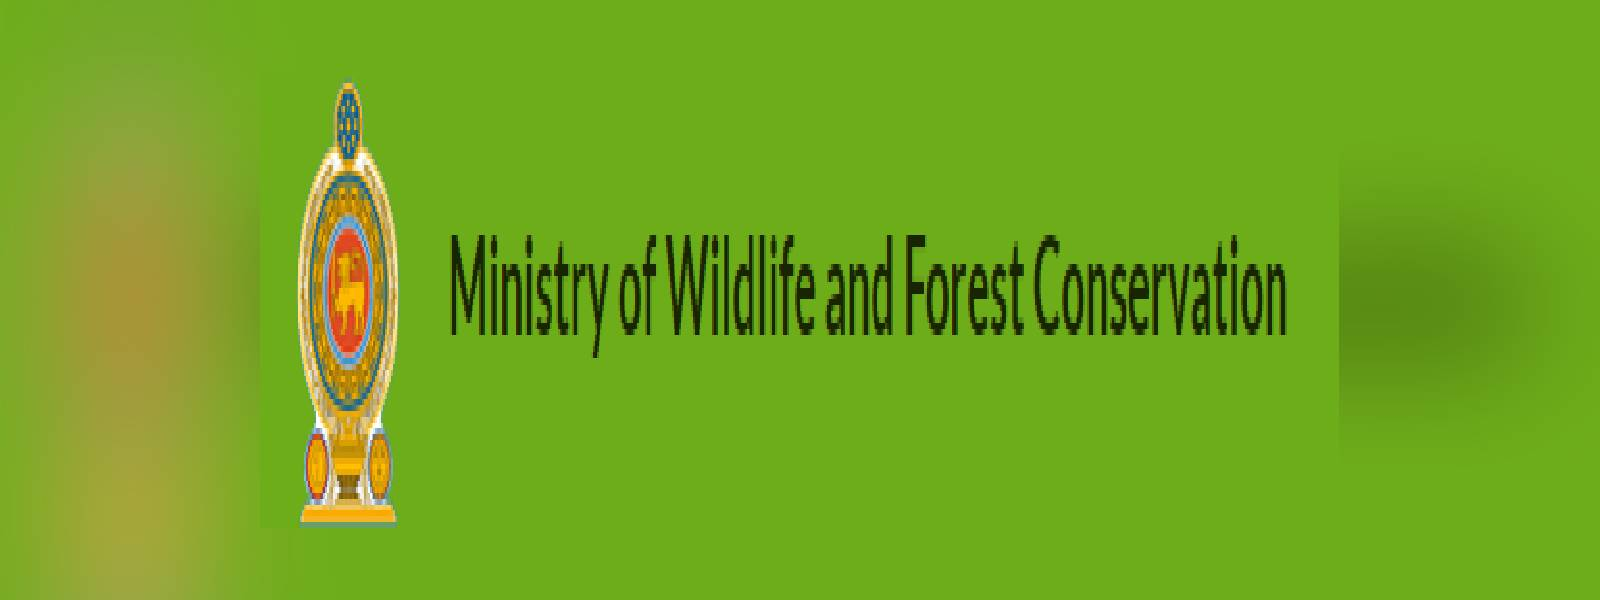 Island-wide survey on Protected Flora and Fauna